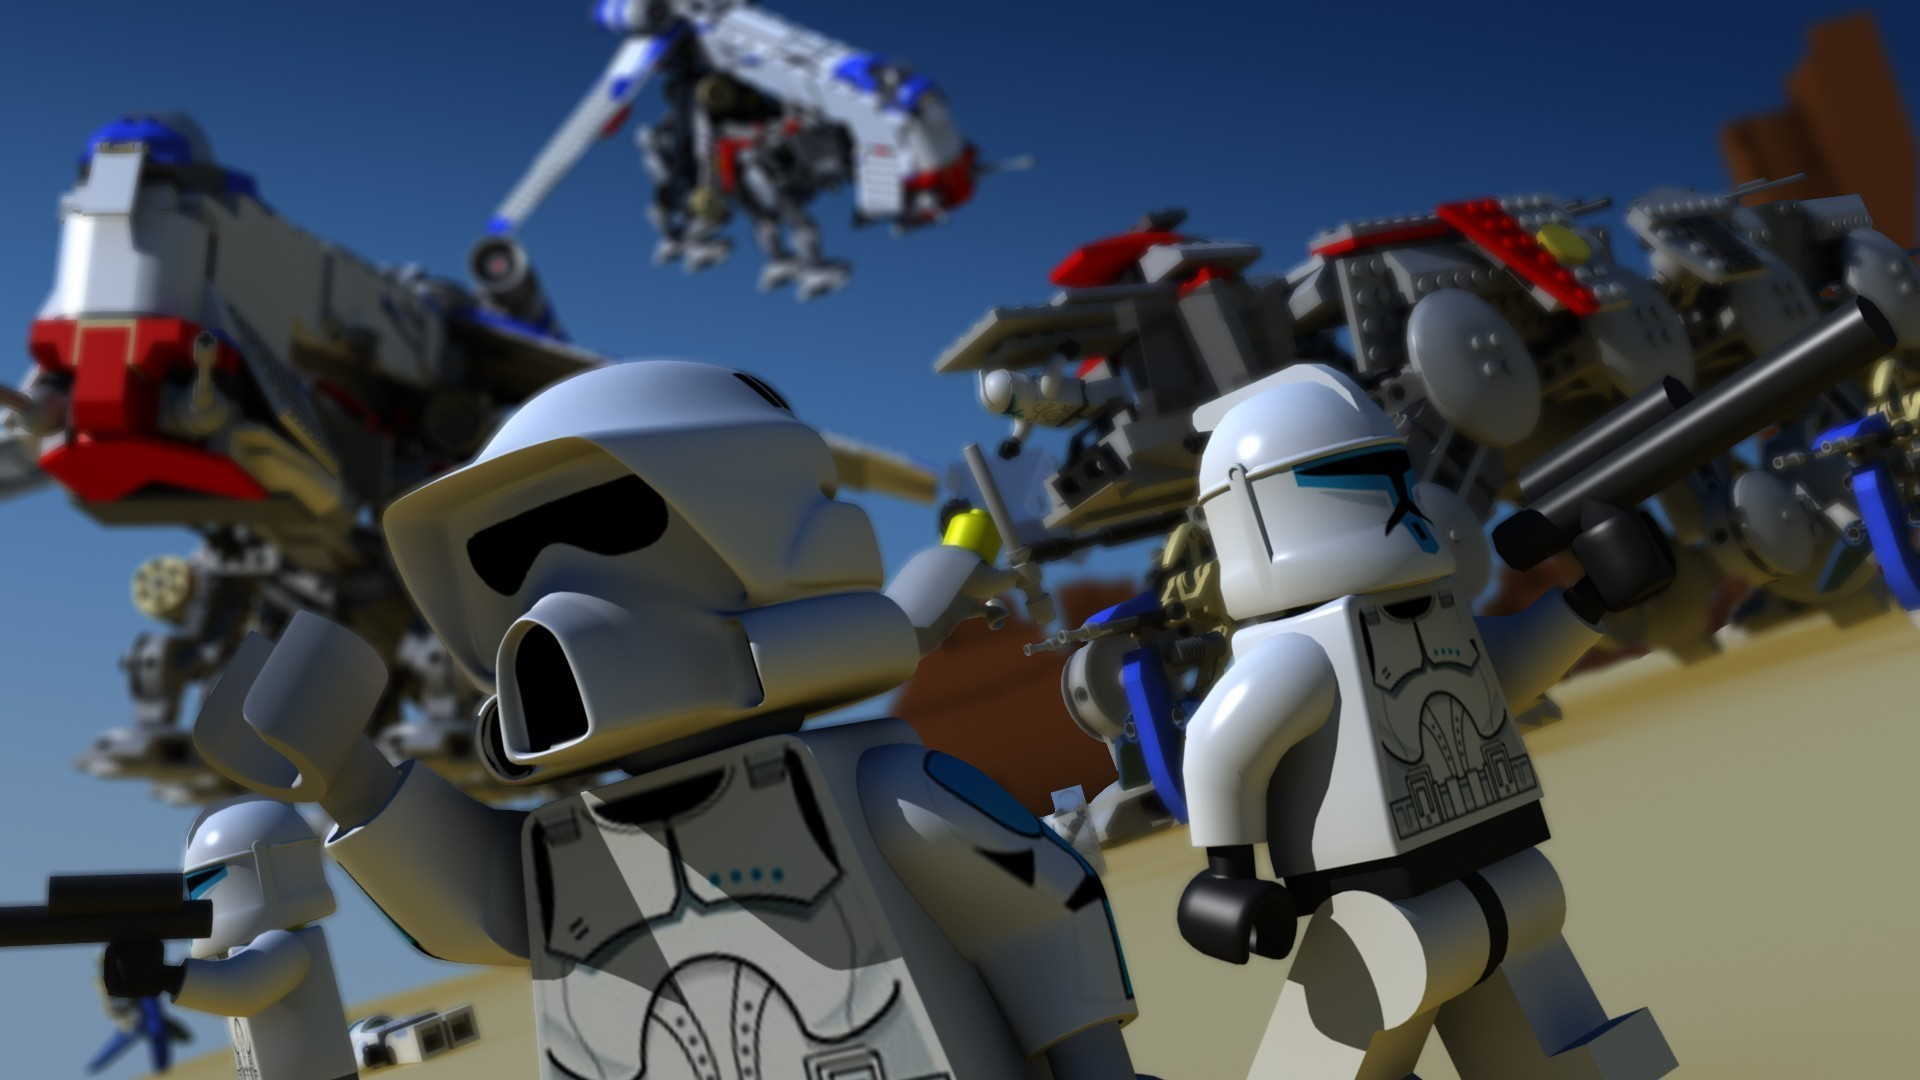 Lego Star Wars Wallpaper 69+ images